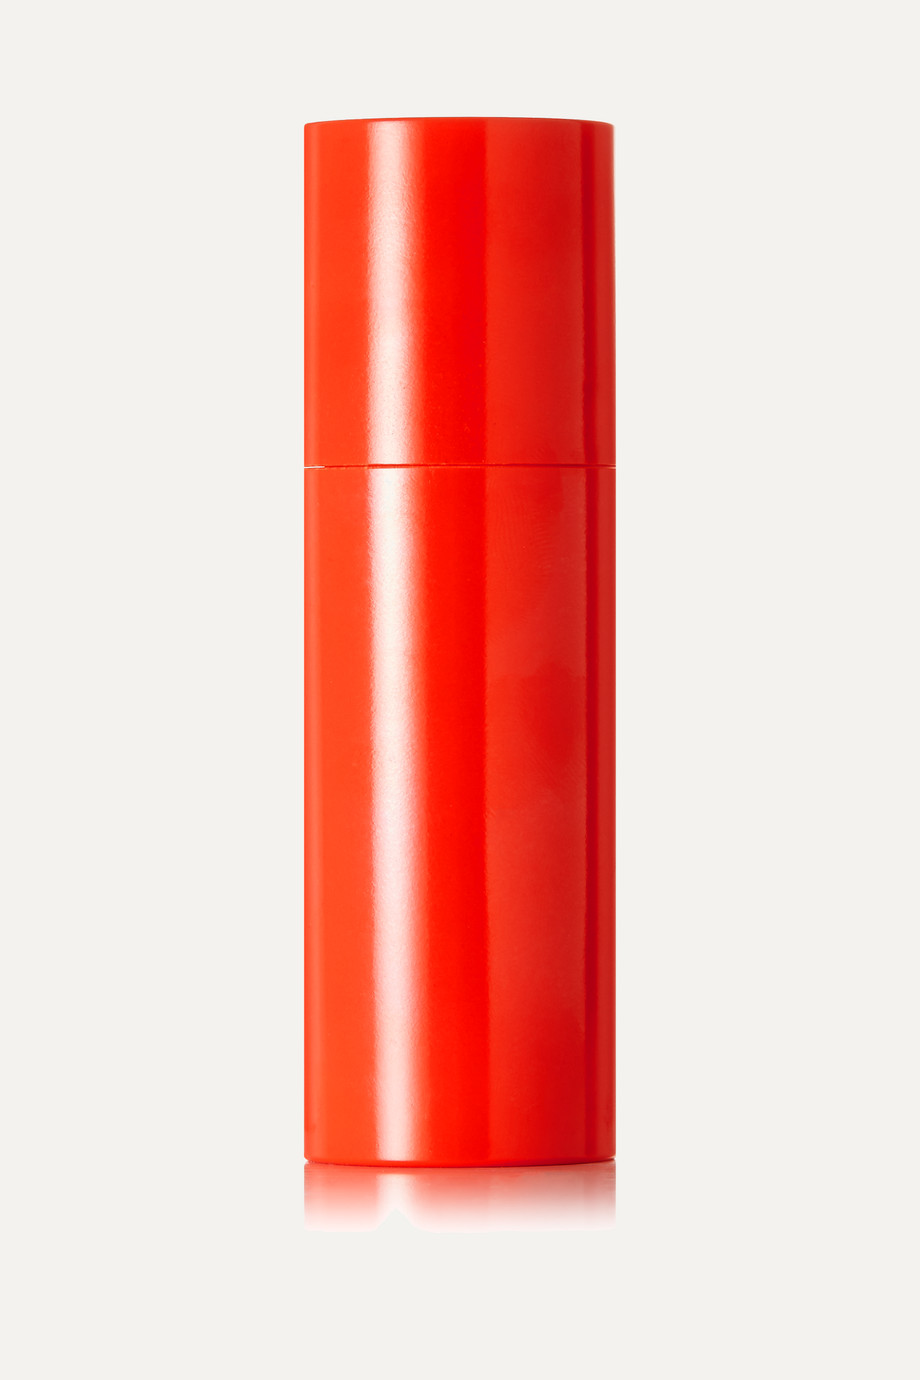 Frederic Malle Travel Spray Case – Red – Reiseetui